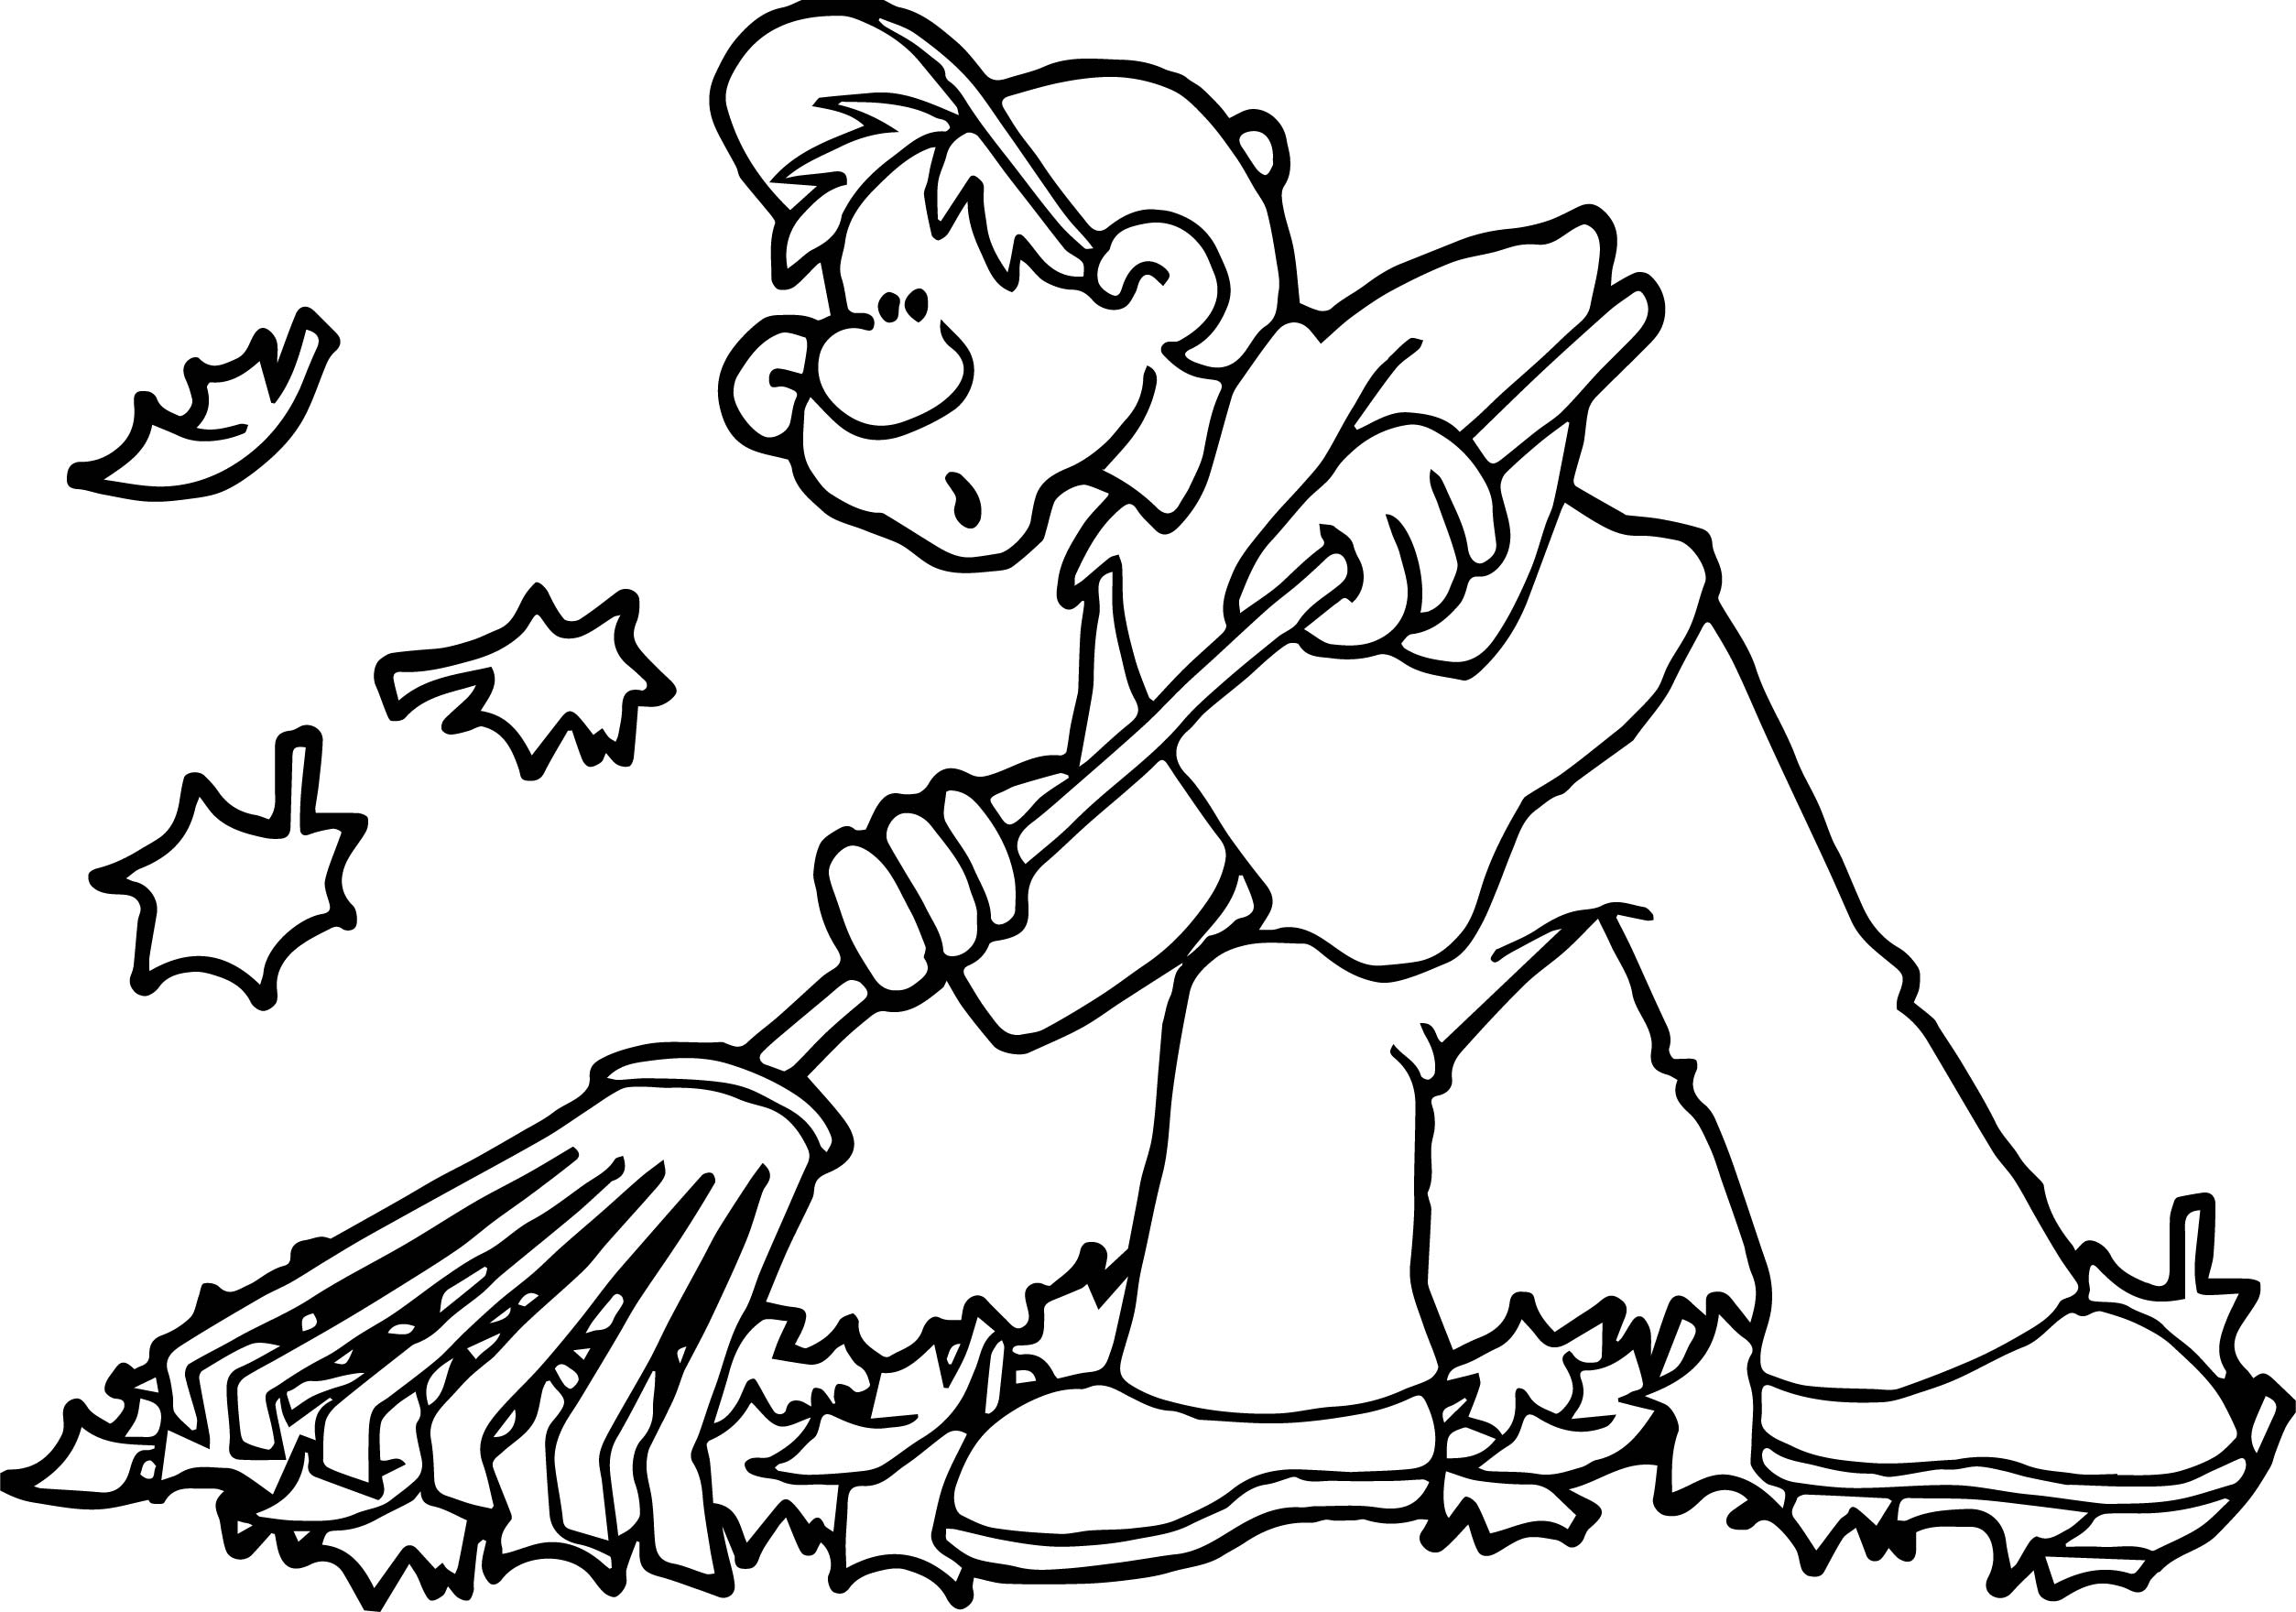 Autumn Cleaning Leaf Boy Coloring Page